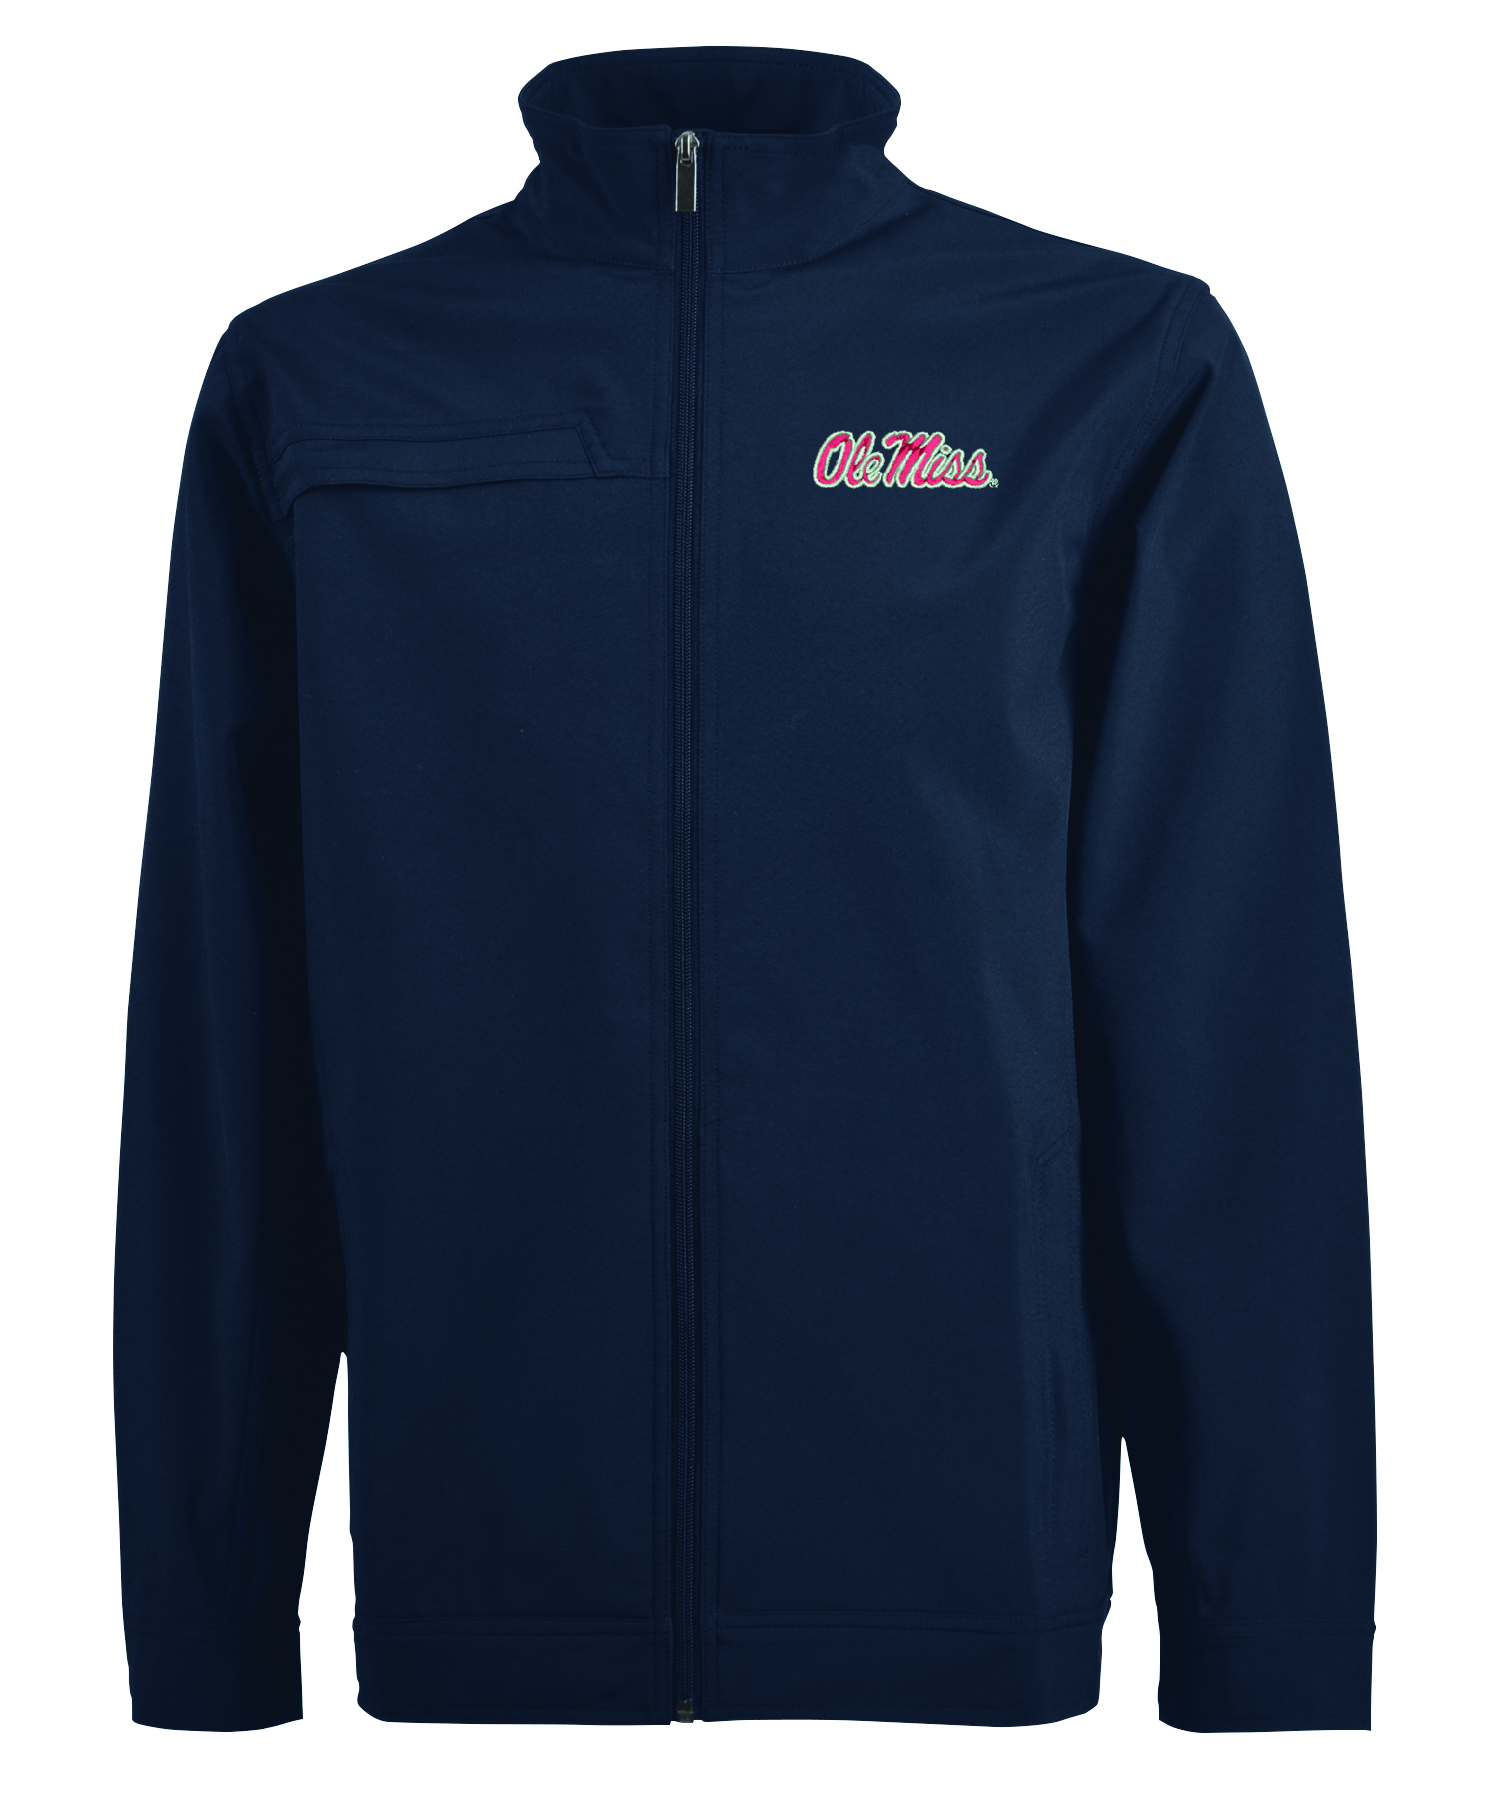 Charles River Men's Dockside Jacket